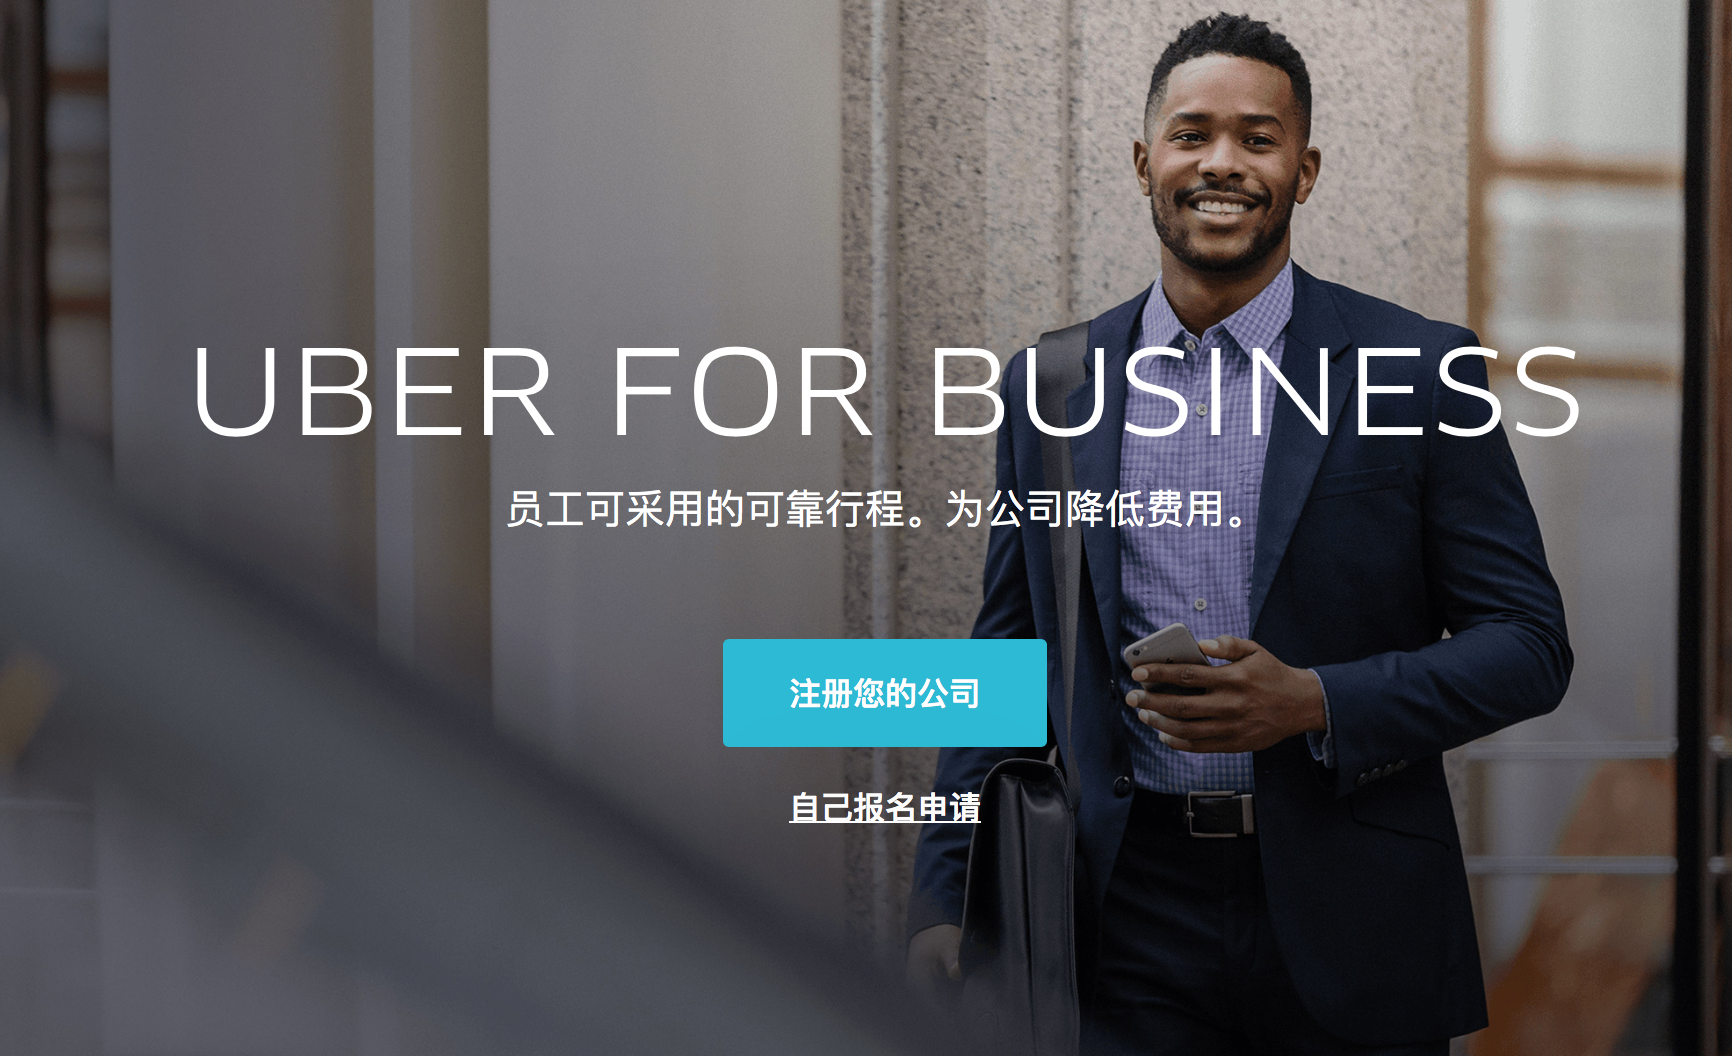 uber-for-business